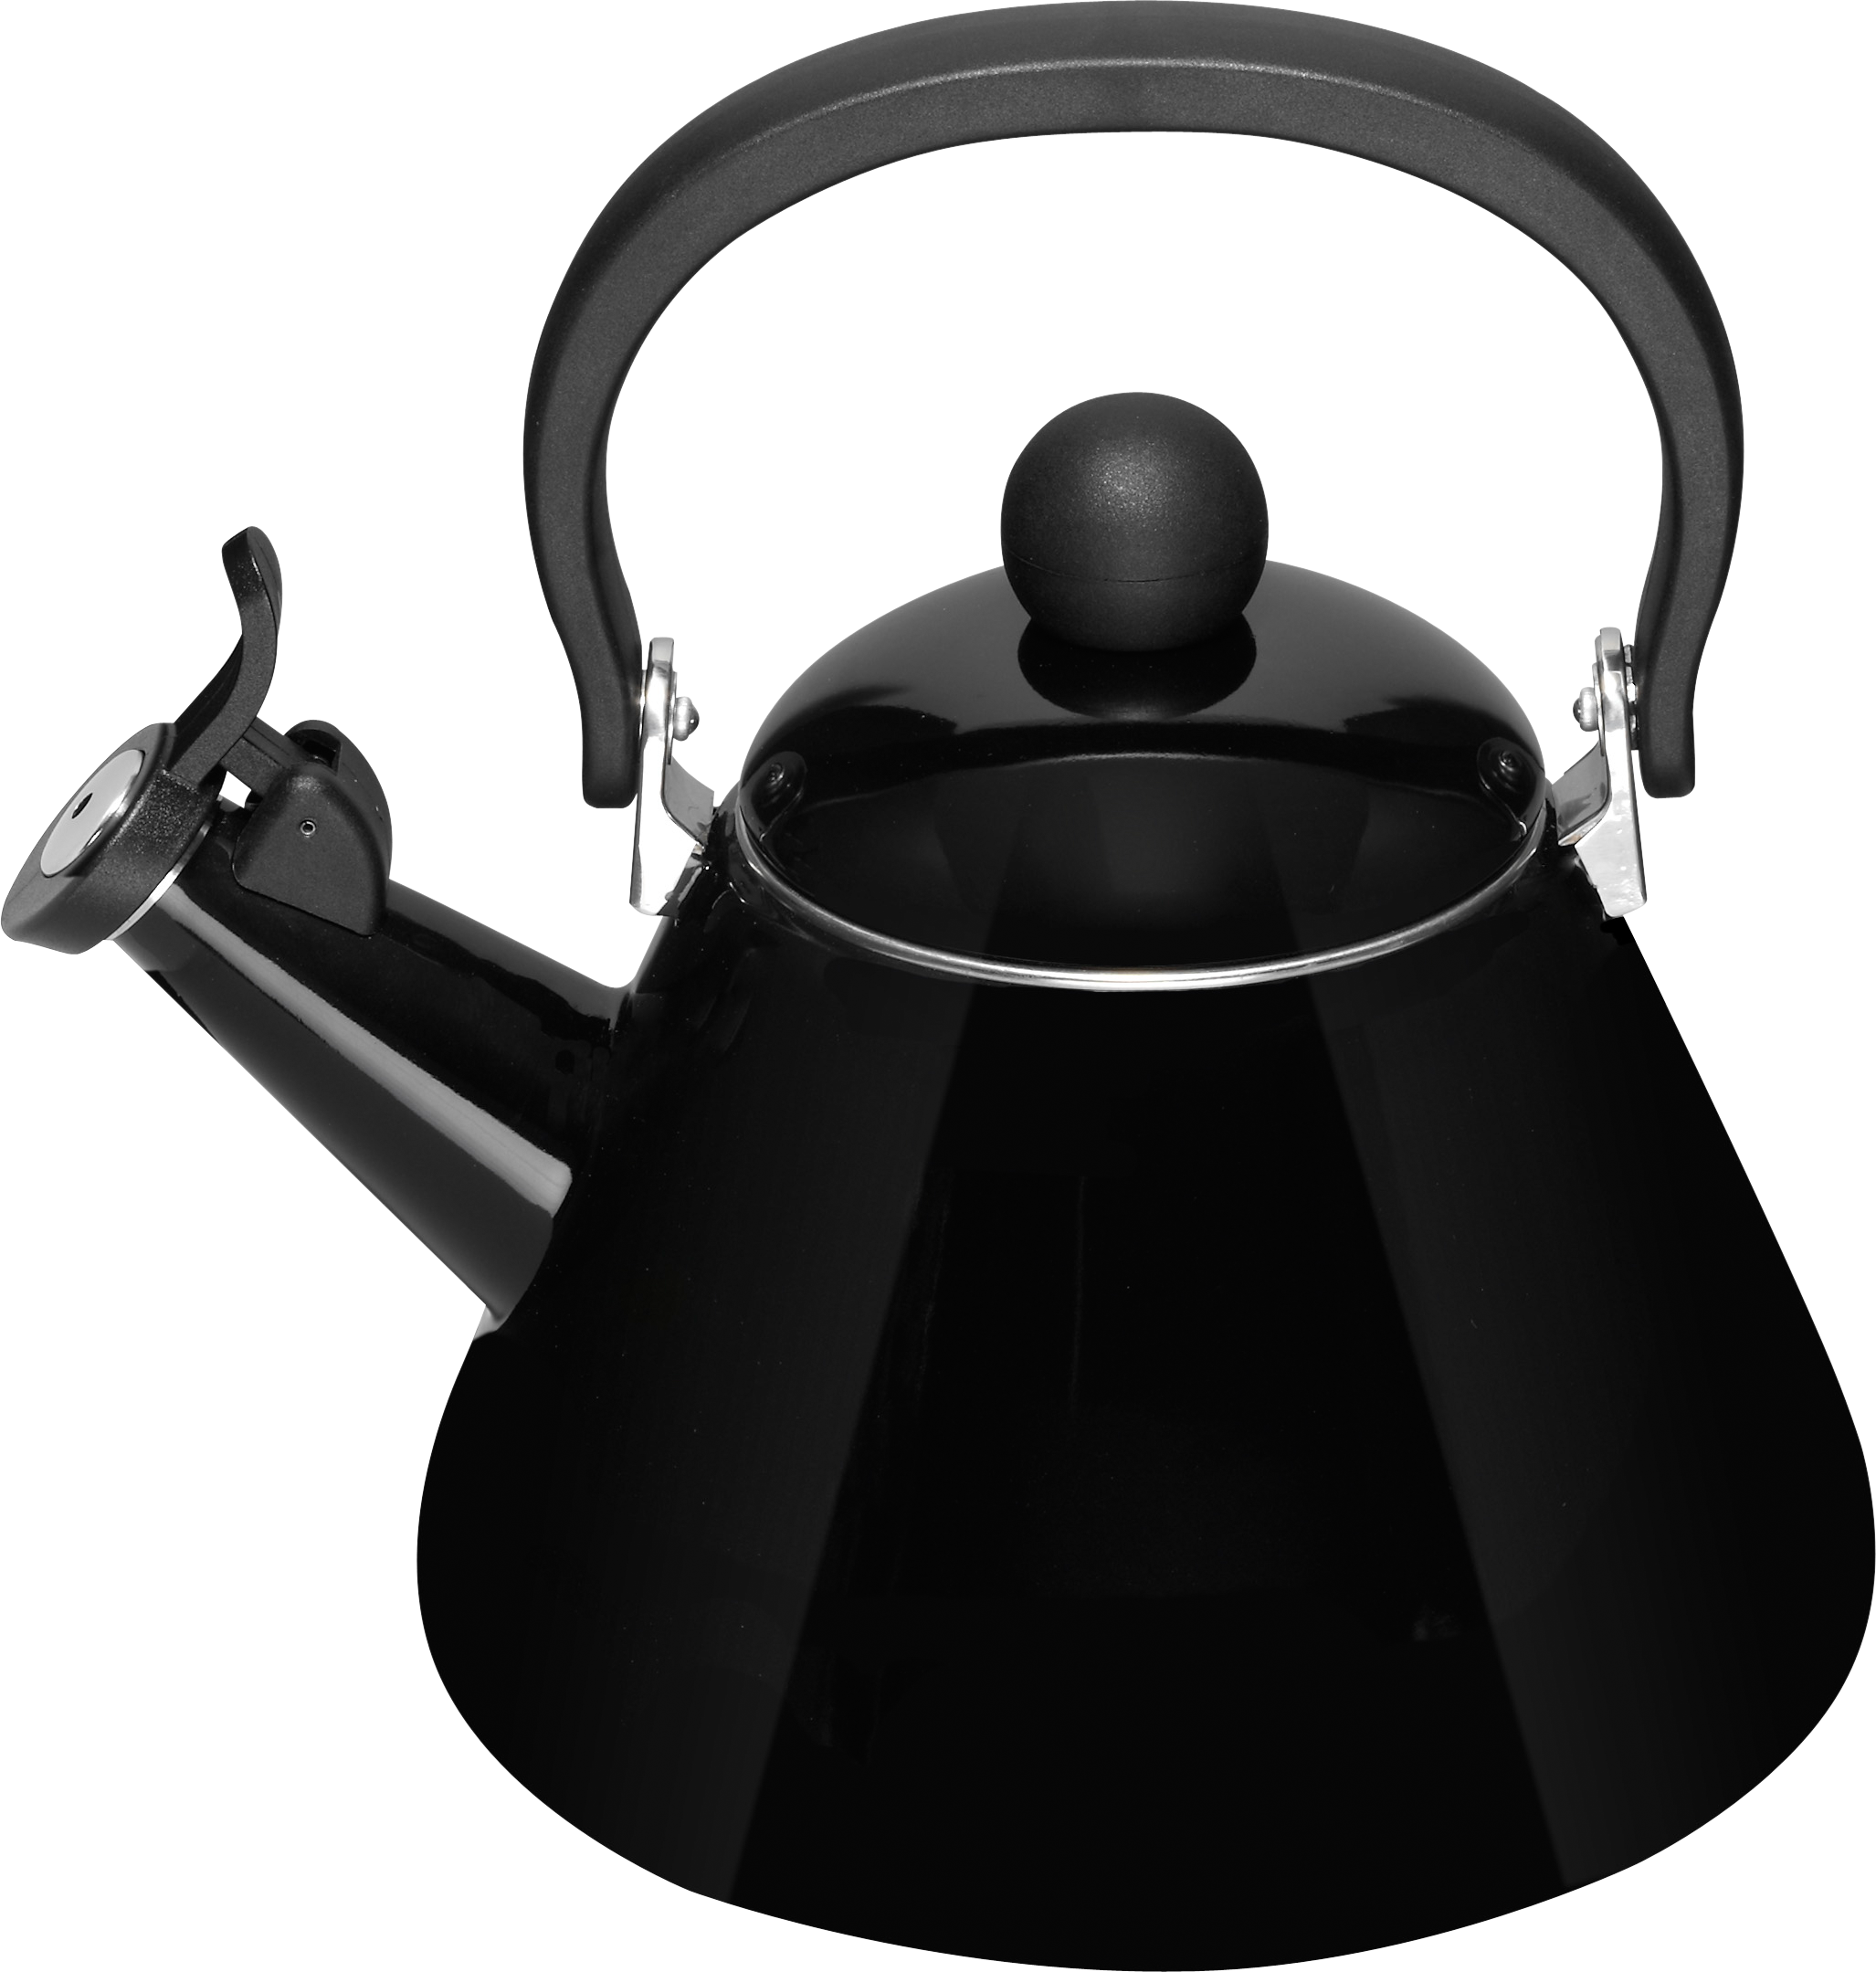 Free download of Kettle PNG in High Resolution